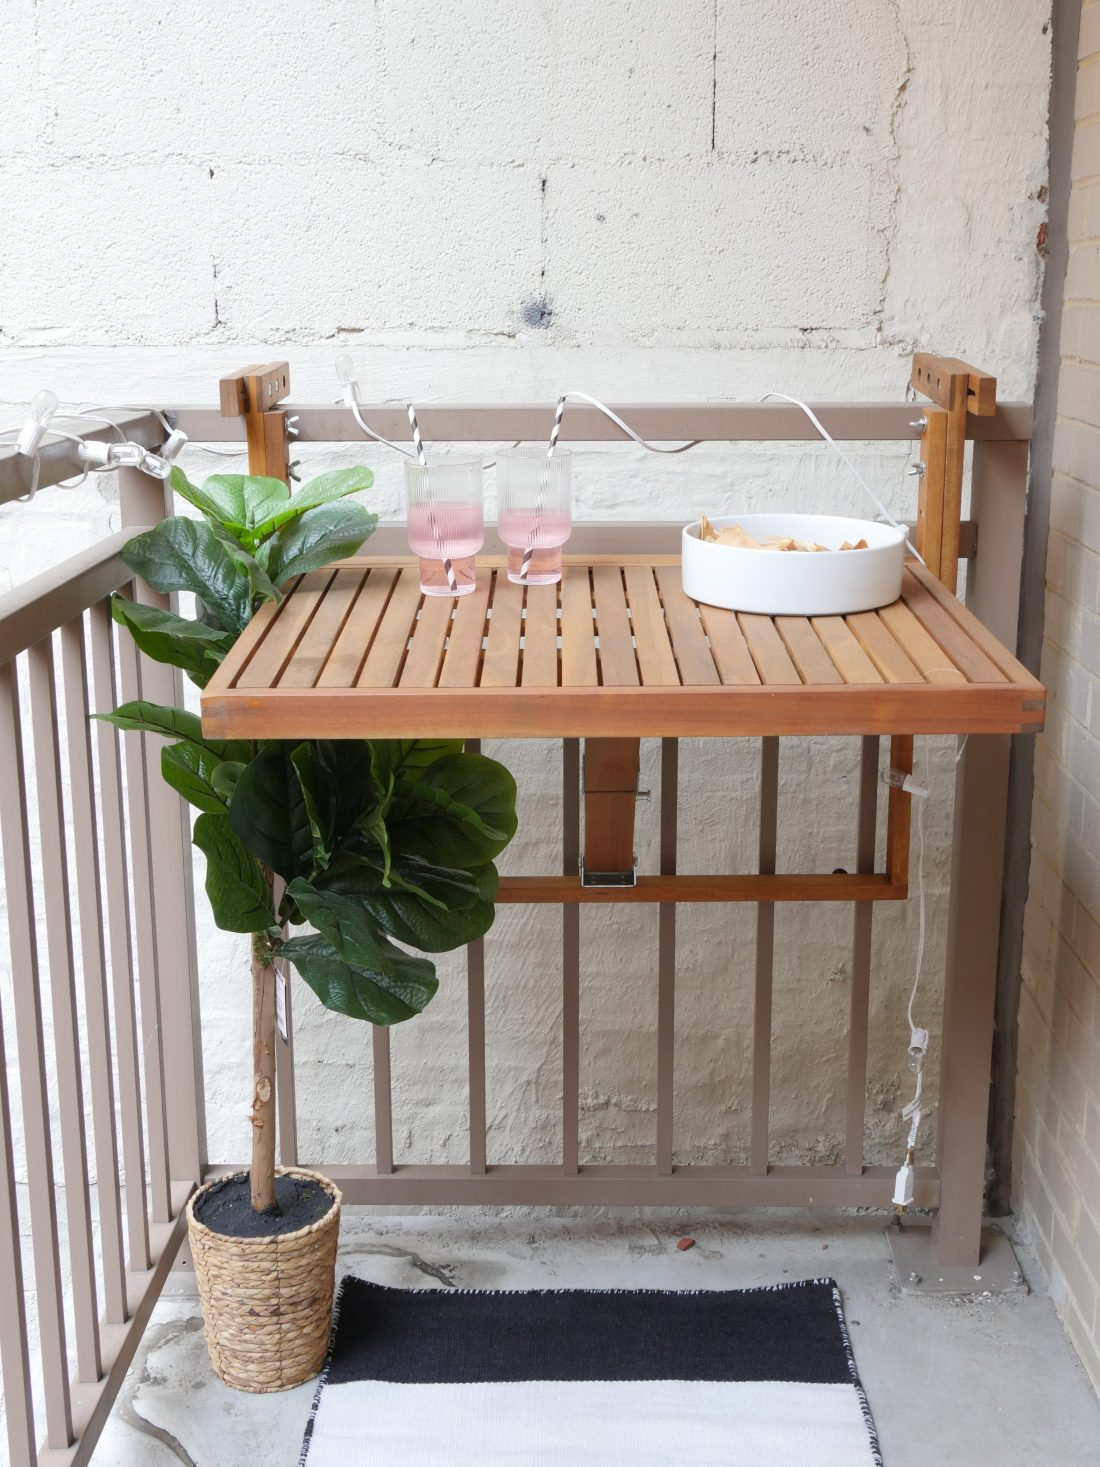 Have a small rental balcony? Struggle to decorate it? Here's how I decorate my small apartment balcony on a budget #balconyideas #balconyideasapartment #balconydecor #smallapartmentdecorating #smallapartmentideas #smallbalconyideas